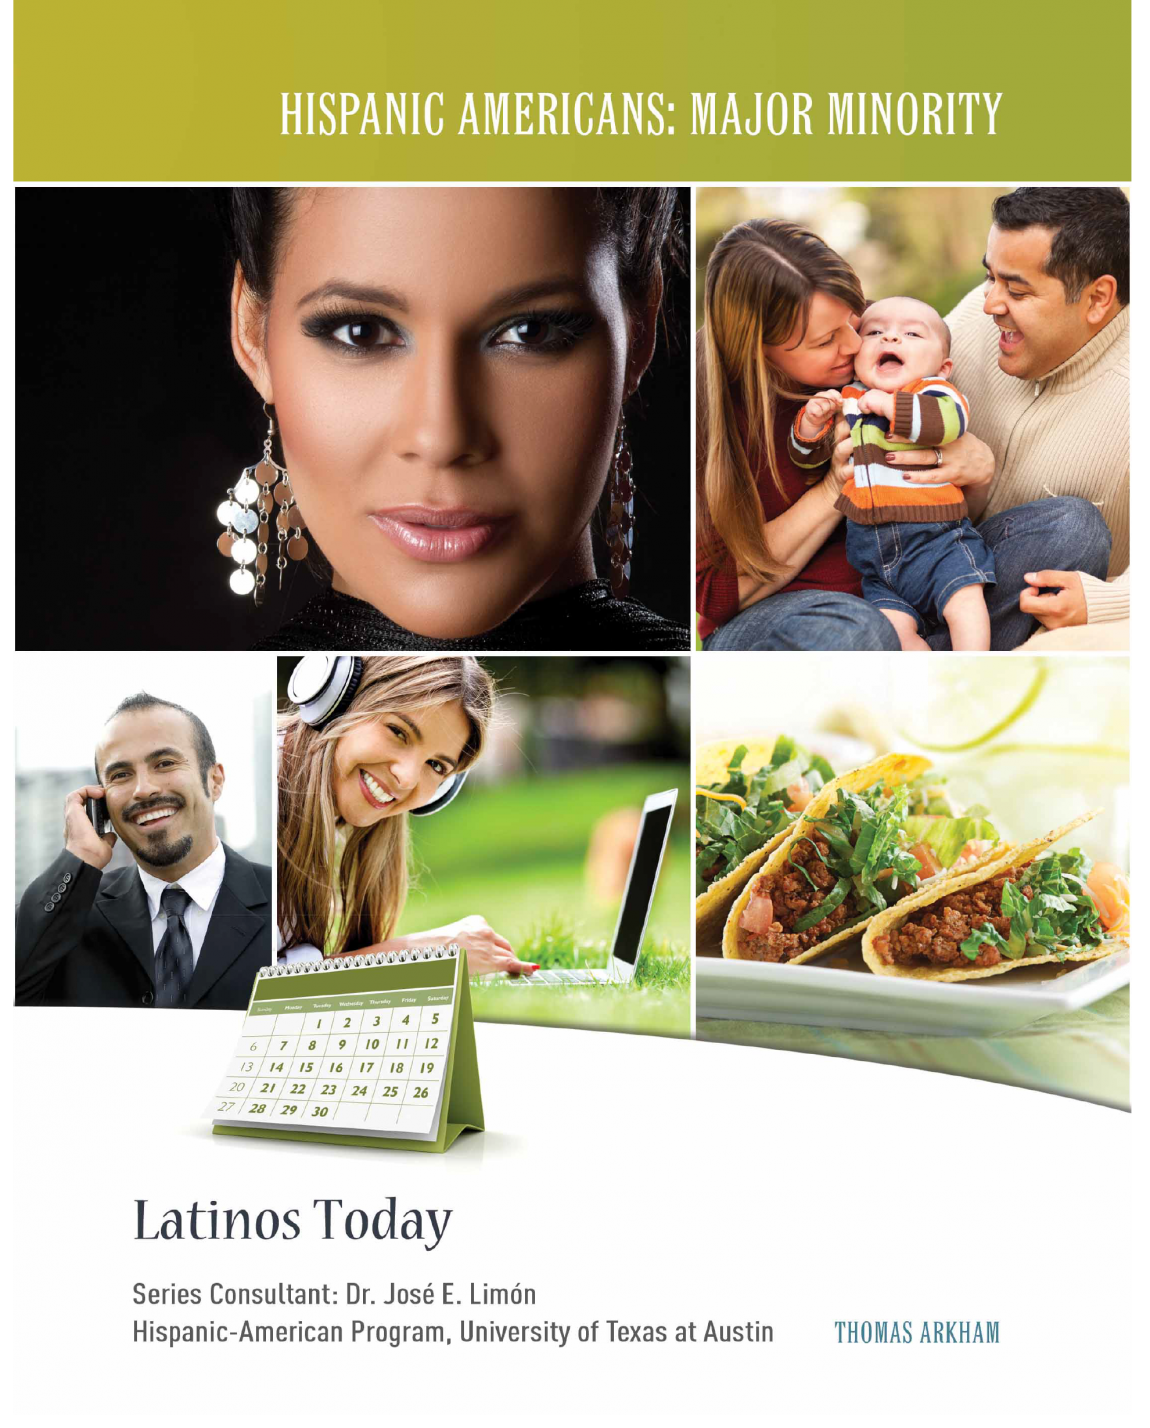 Latinos-today-01.png